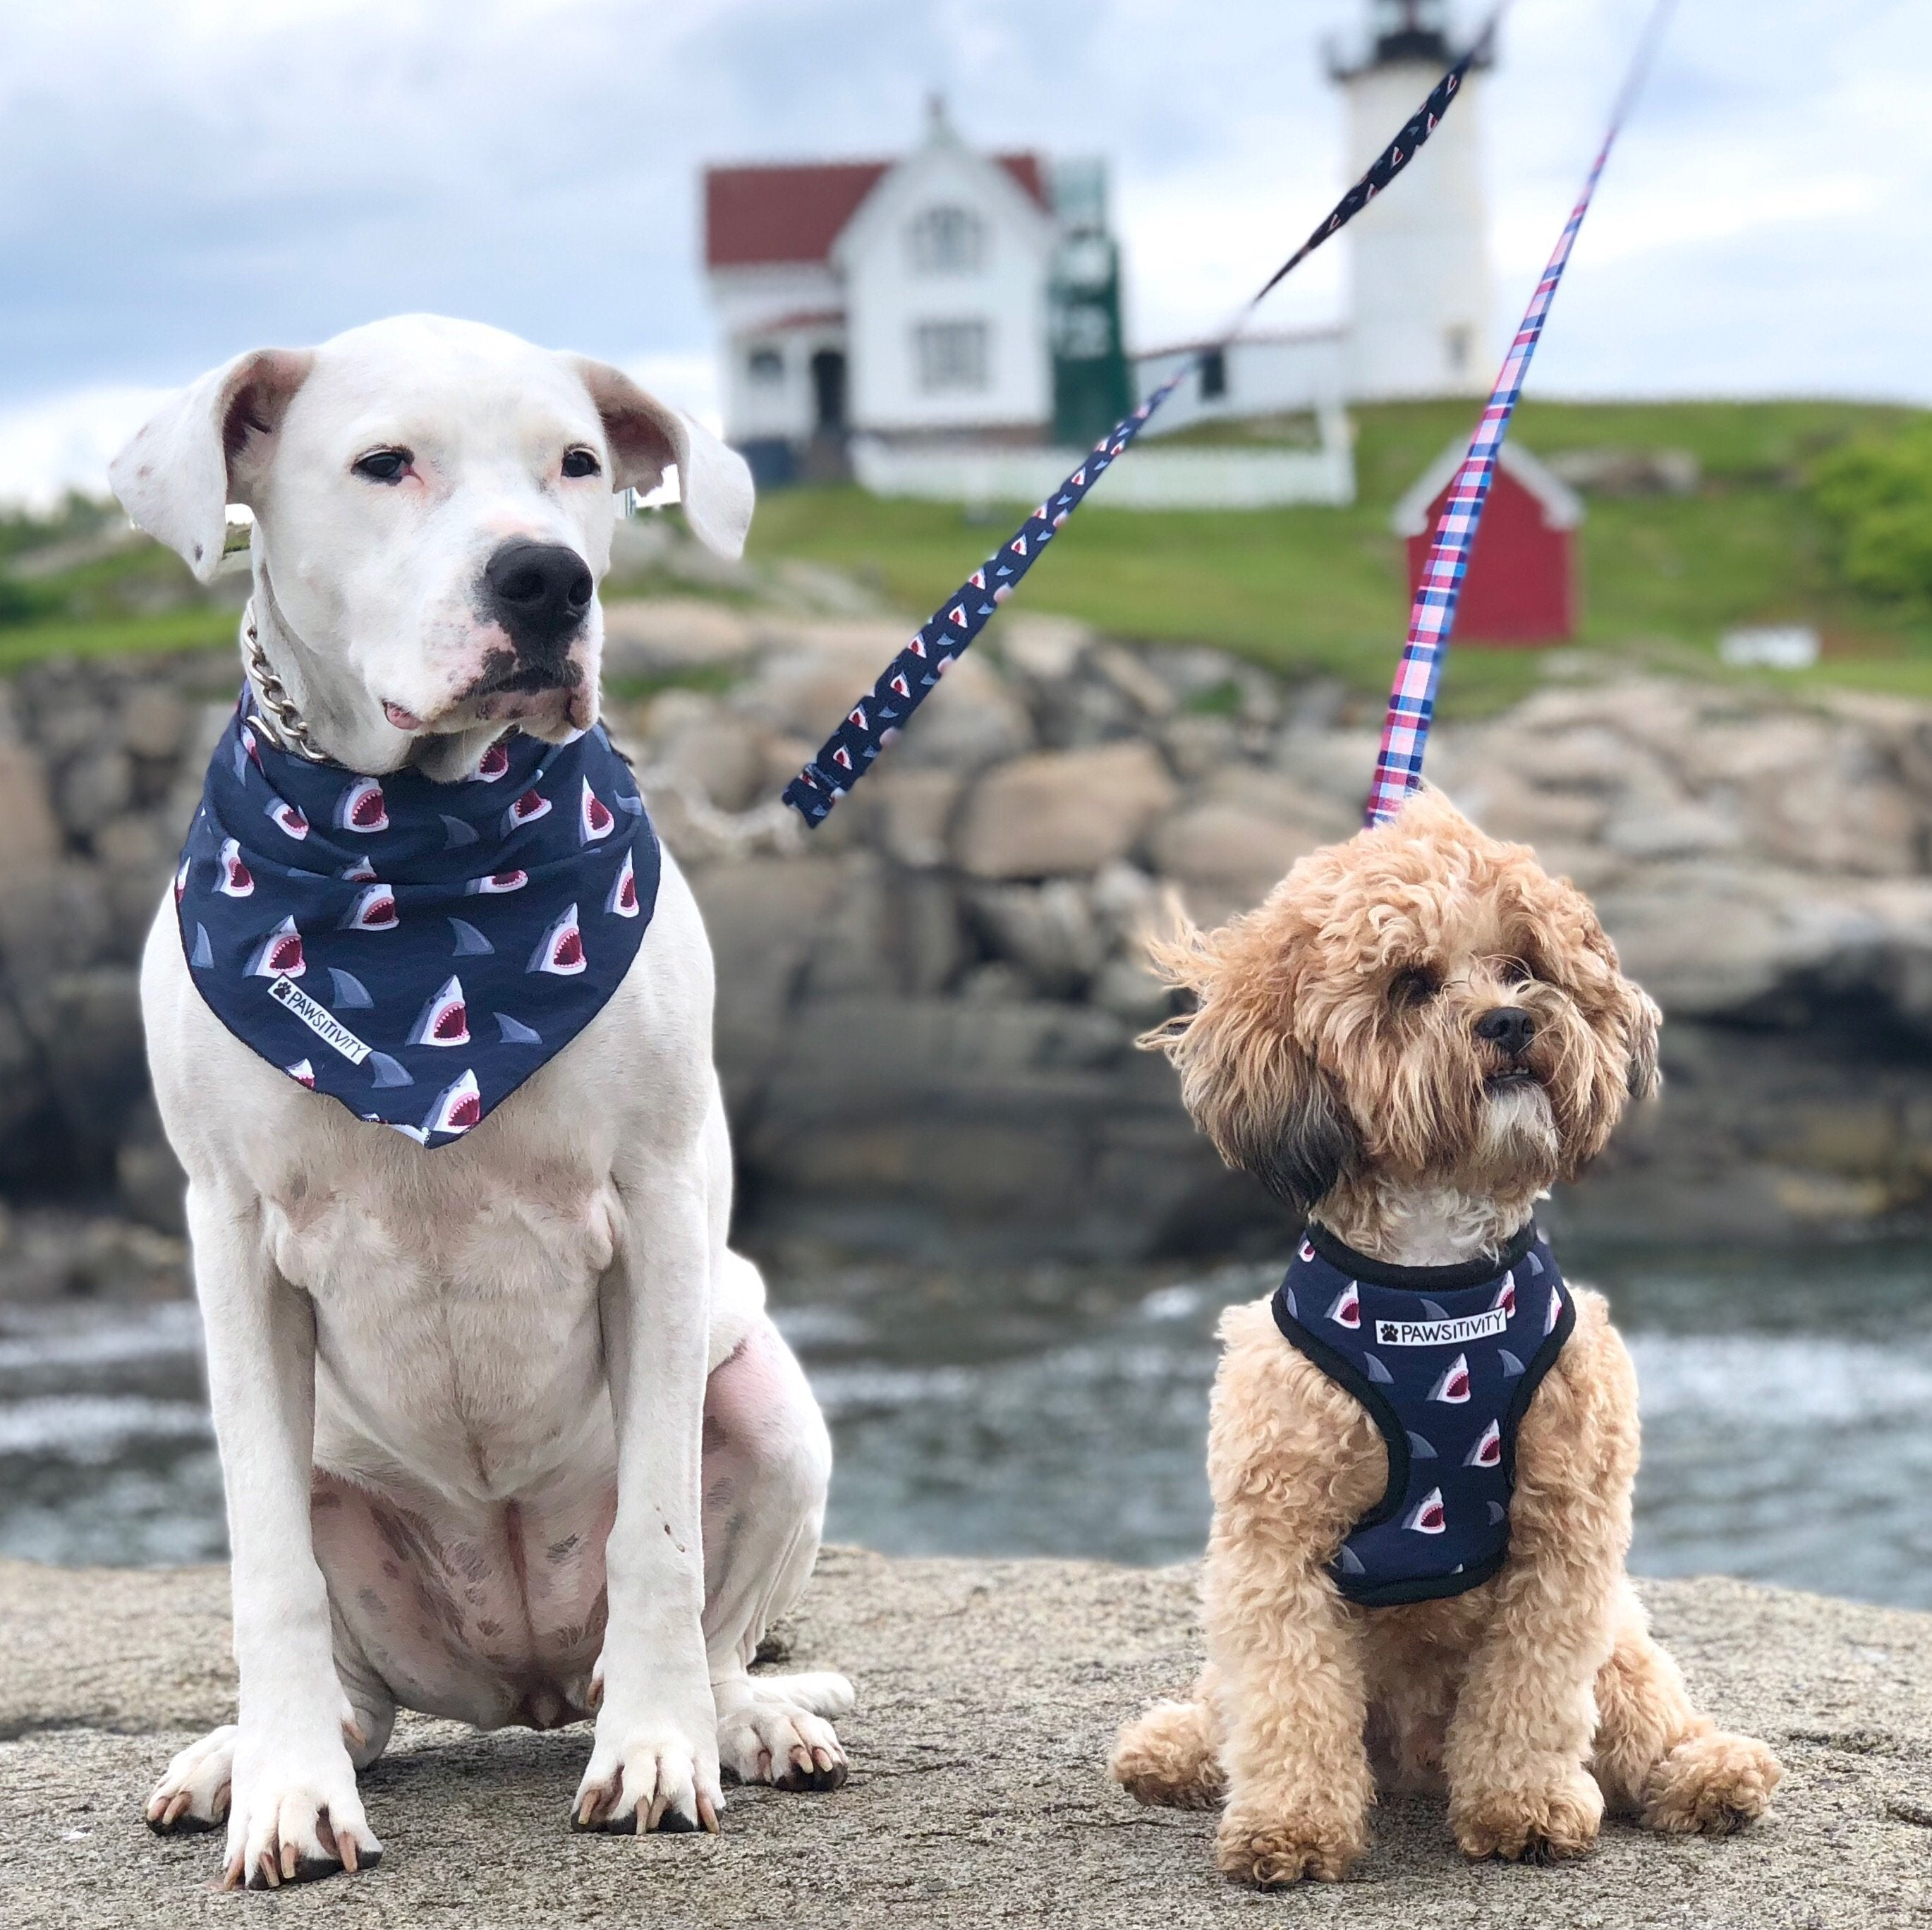 Pawsitivity Reversible Harness - Shark Bite & Madras Plaid